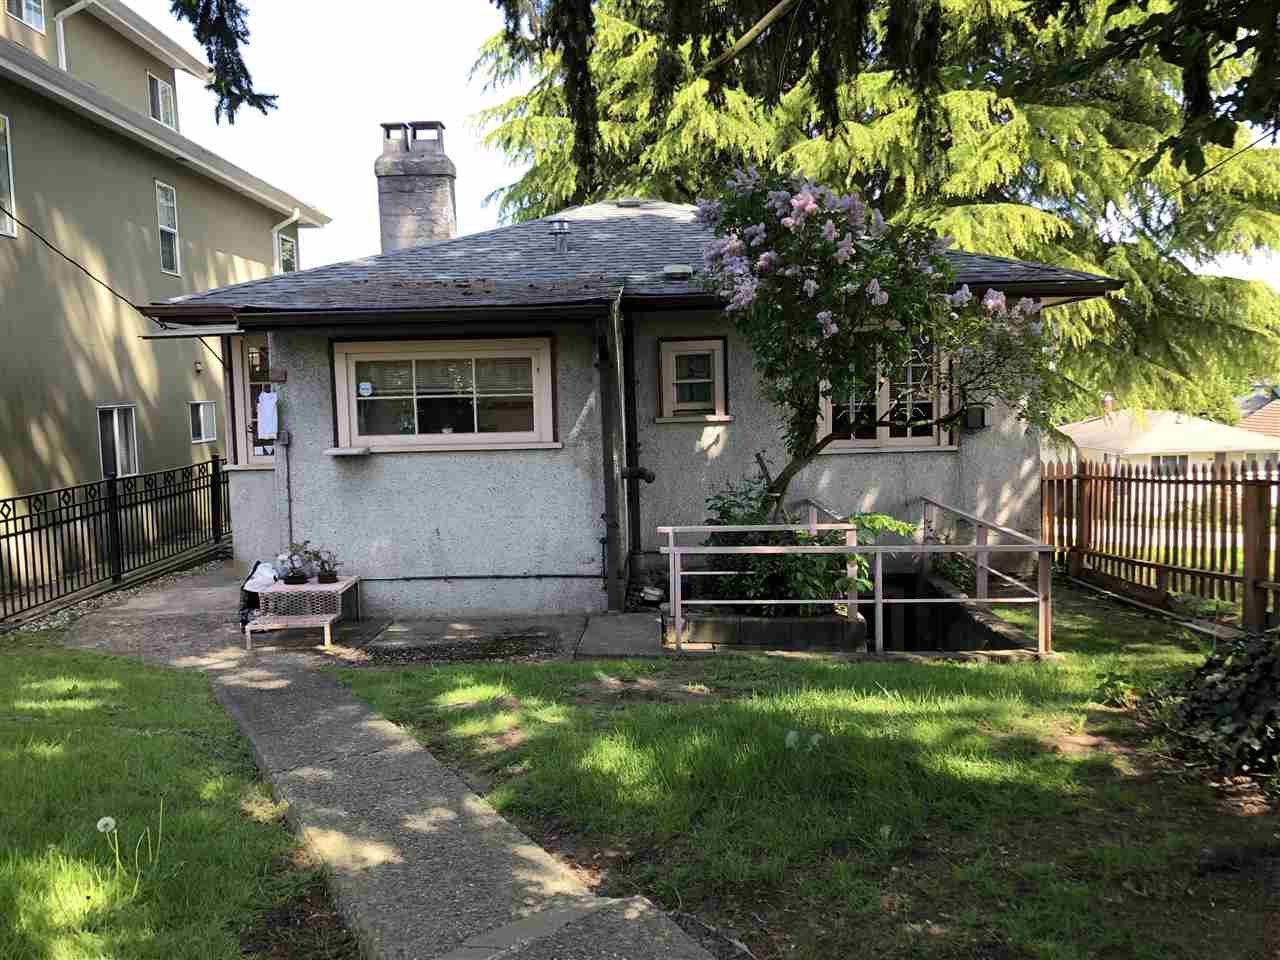 Photo 12: Photos: 2496 E 27TH Avenue in Vancouver: Collingwood VE House for sale (Vancouver East)  : MLS®# R2270492